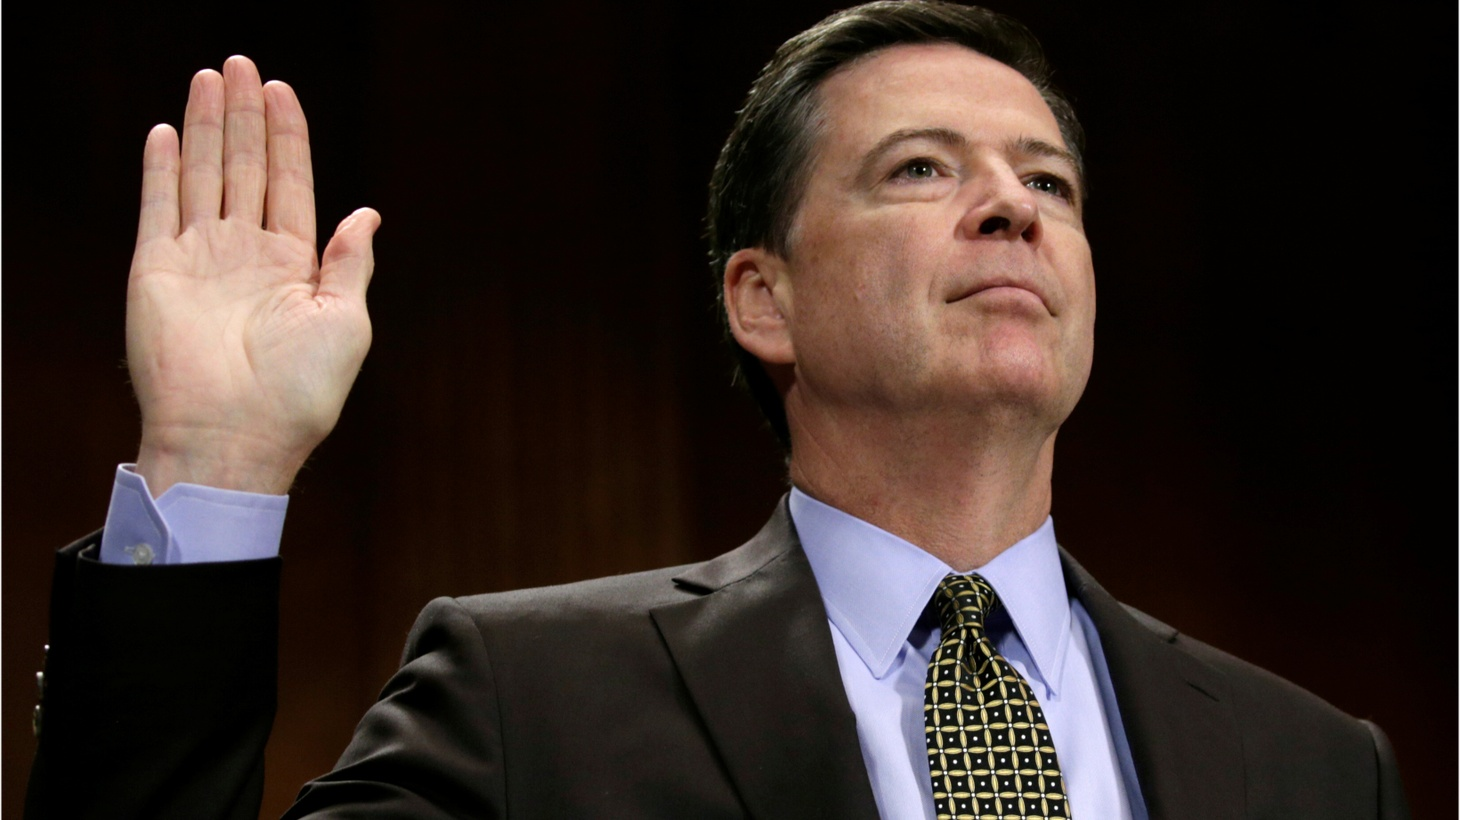 Former FBI director James Comey testifies Thursday in front of the Senate Intelligence Committee, but his opening statement has been released. In it, he says he felt pressured by Donald Trump to declare loyalty to him and publicly clear him of any wrongdoing in the Russia investigation.